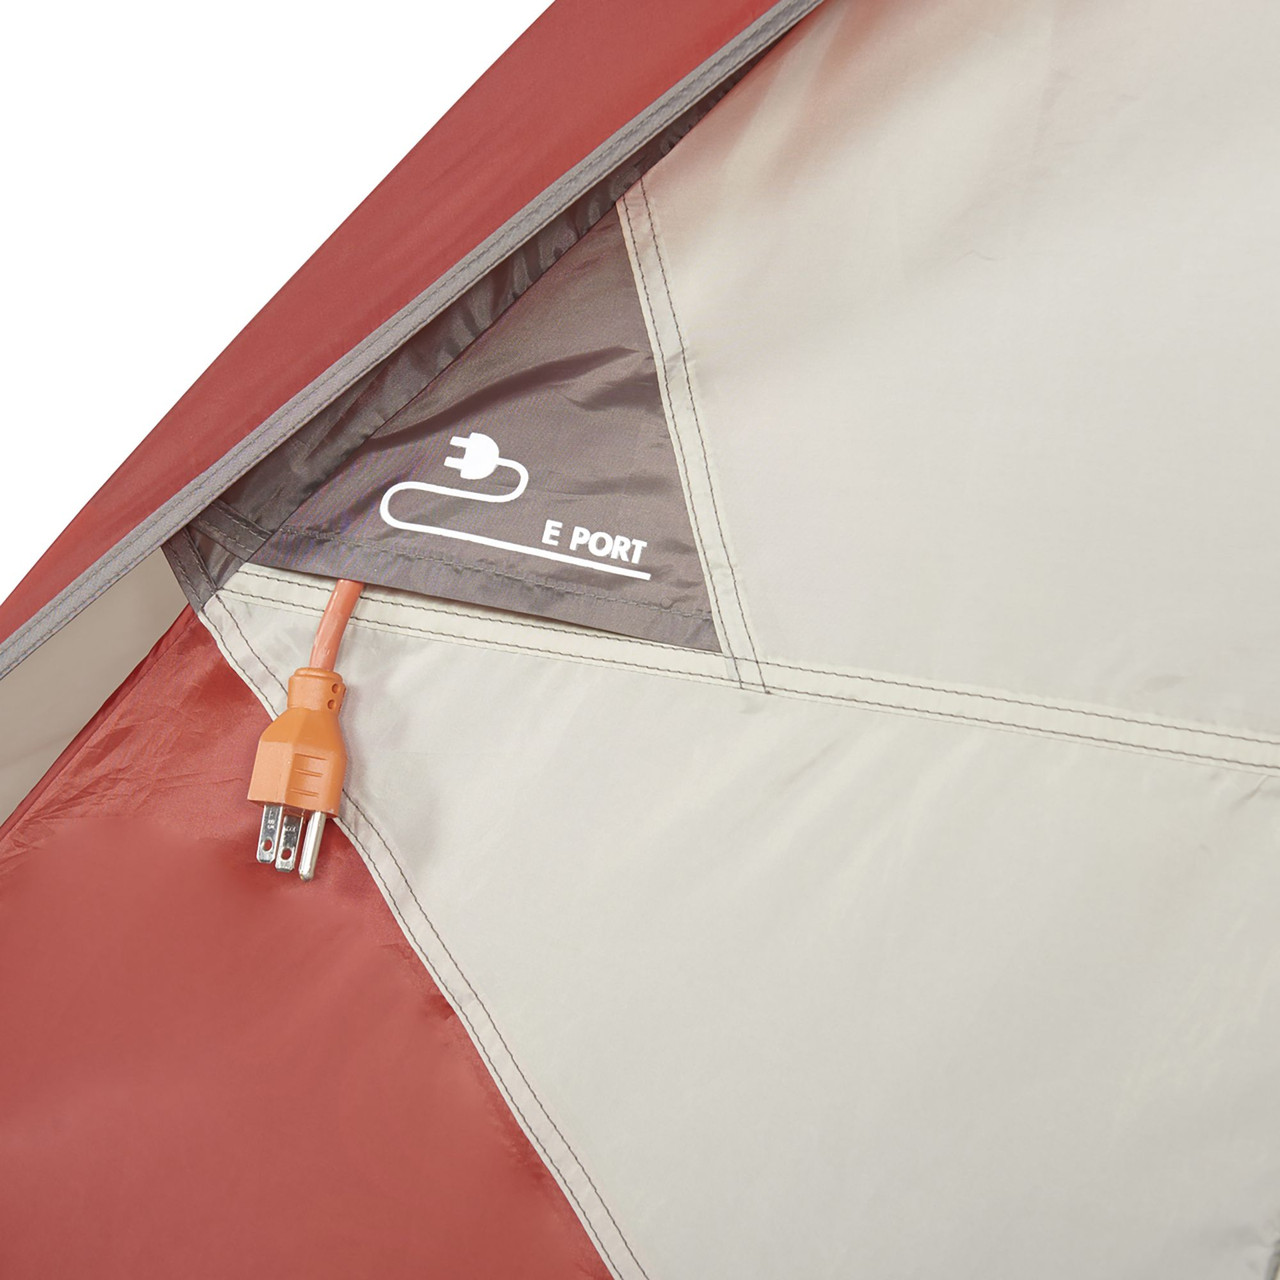 Close up of Wenzel Torry 2 Person Dome Tent, showing port for cords